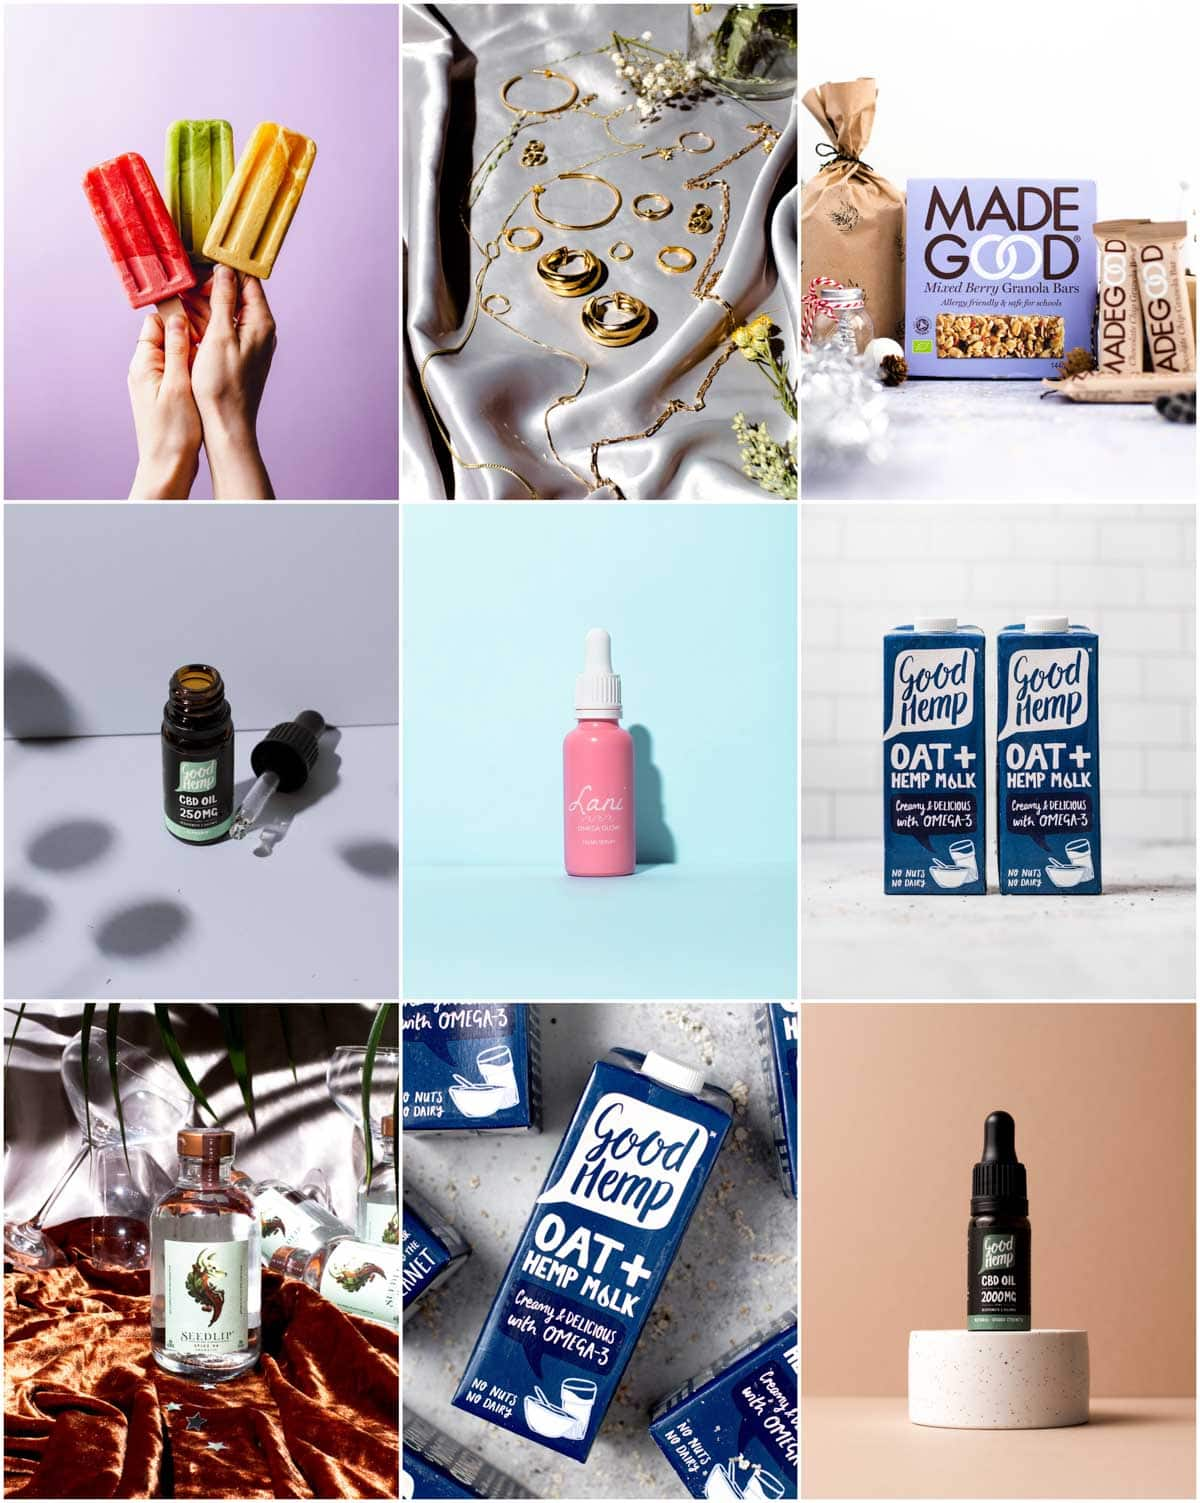 A collage of nine images showing different product photographs of items like milk cartons, bottles, jewellery and granola bars.